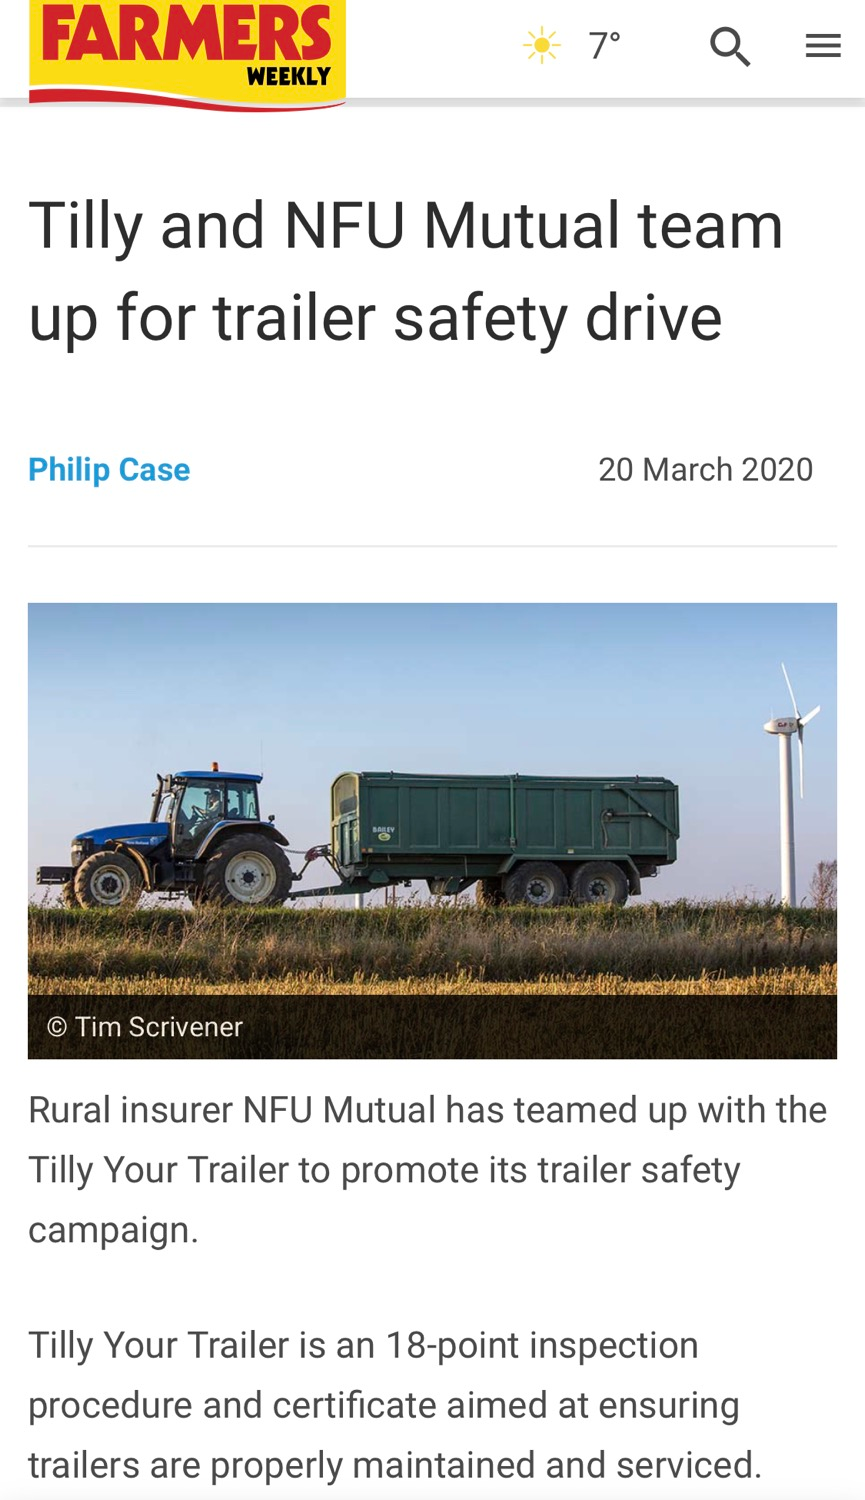 We are proud to be working with Tilly said an NFU Mutual spokesperson.